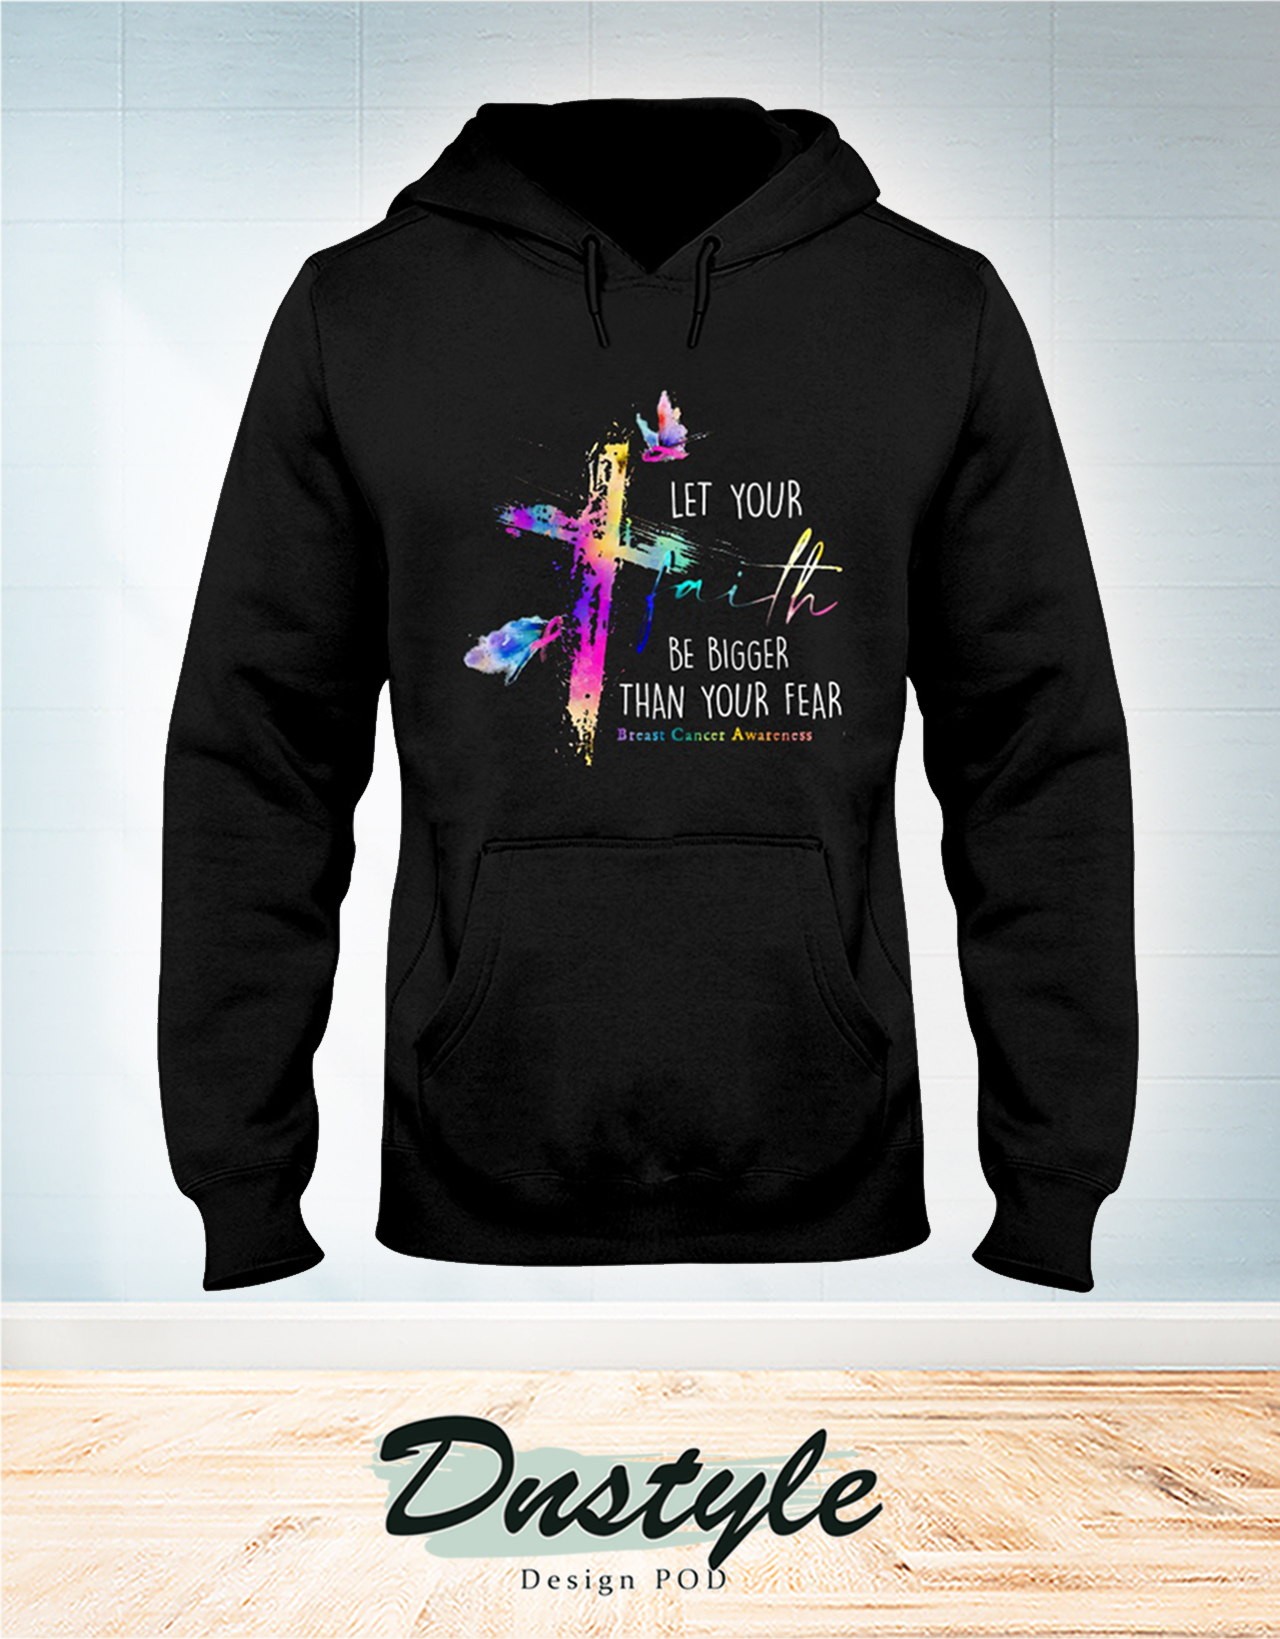 Let your faith be bigger than your fear beast cancer awareness hoodie